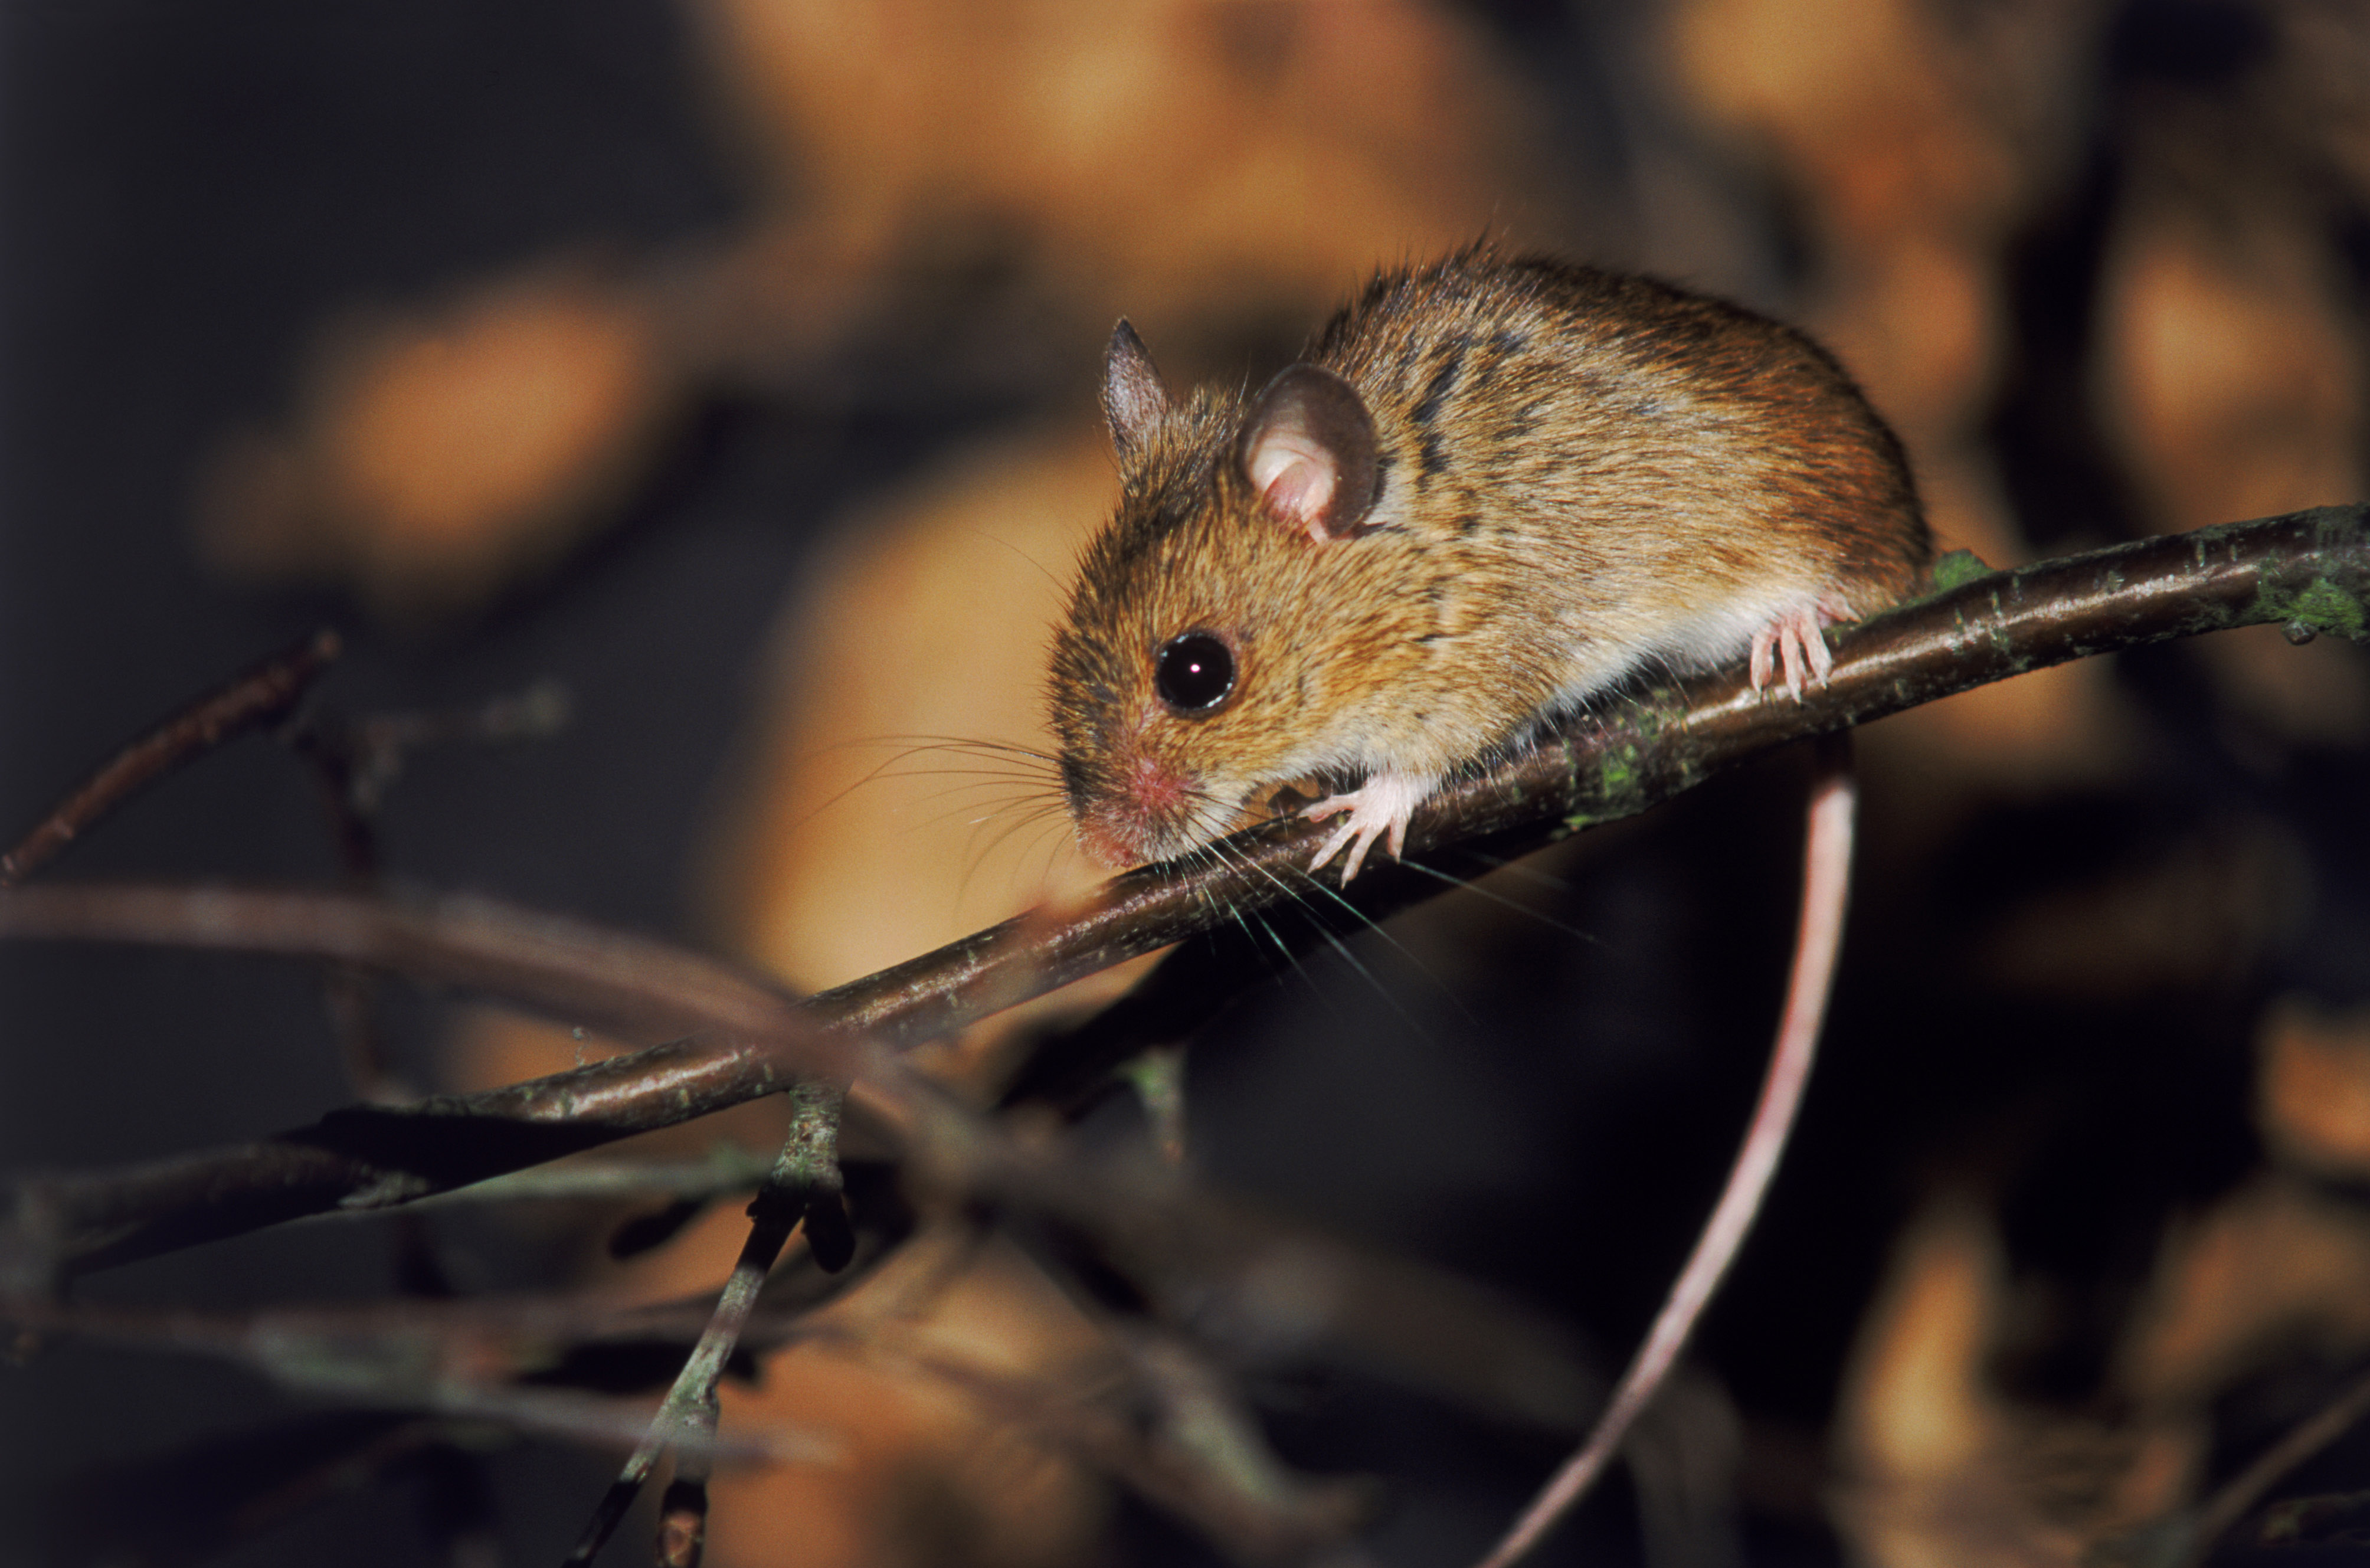 A cute little mouse on a tree branch